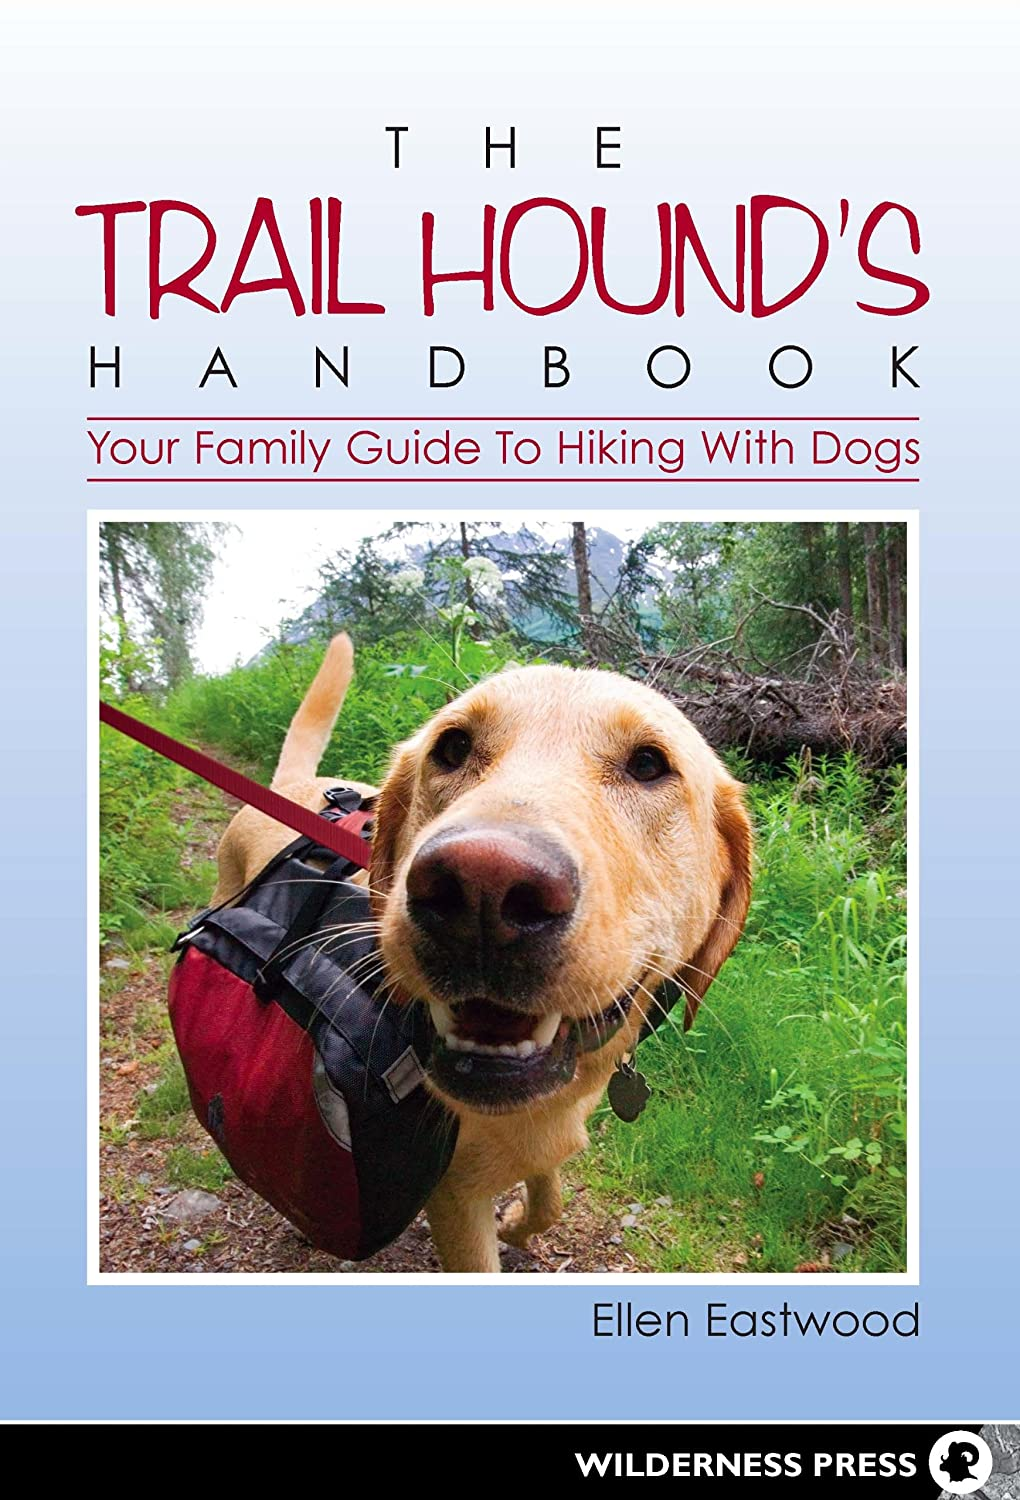 How to Hike with Your Hound advise